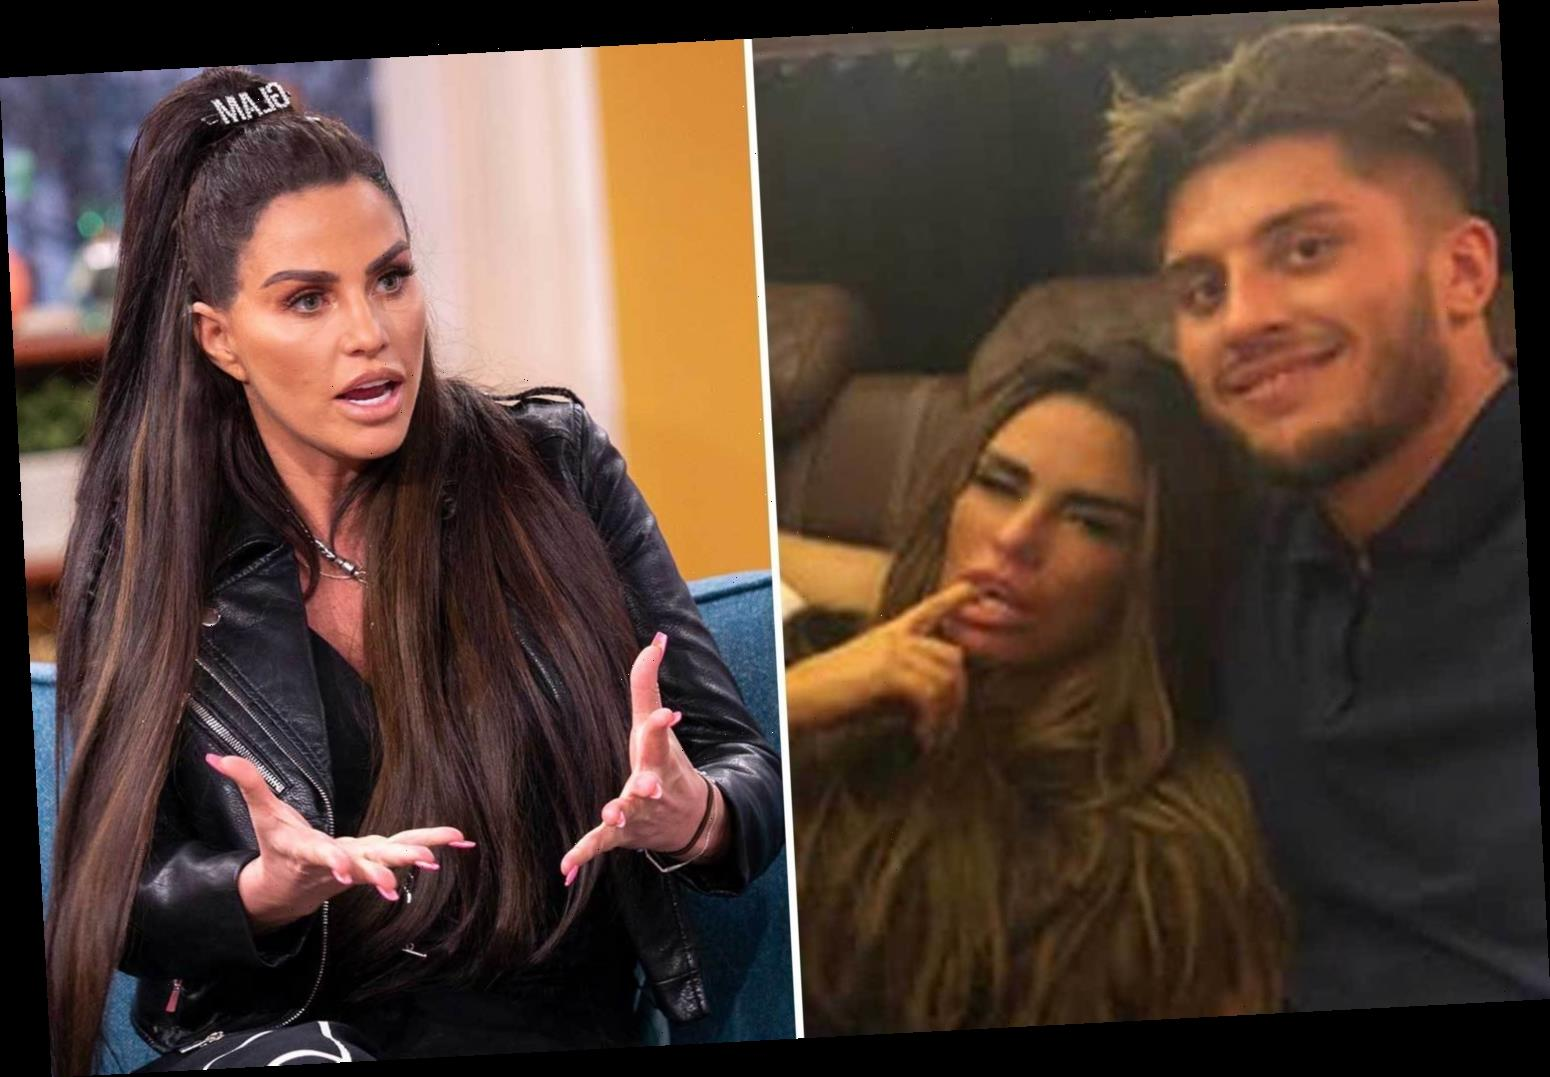 Katie Price's ex toyboy Charles Drury prepares to tell all and leak her secrets on their wild fling – The Sun